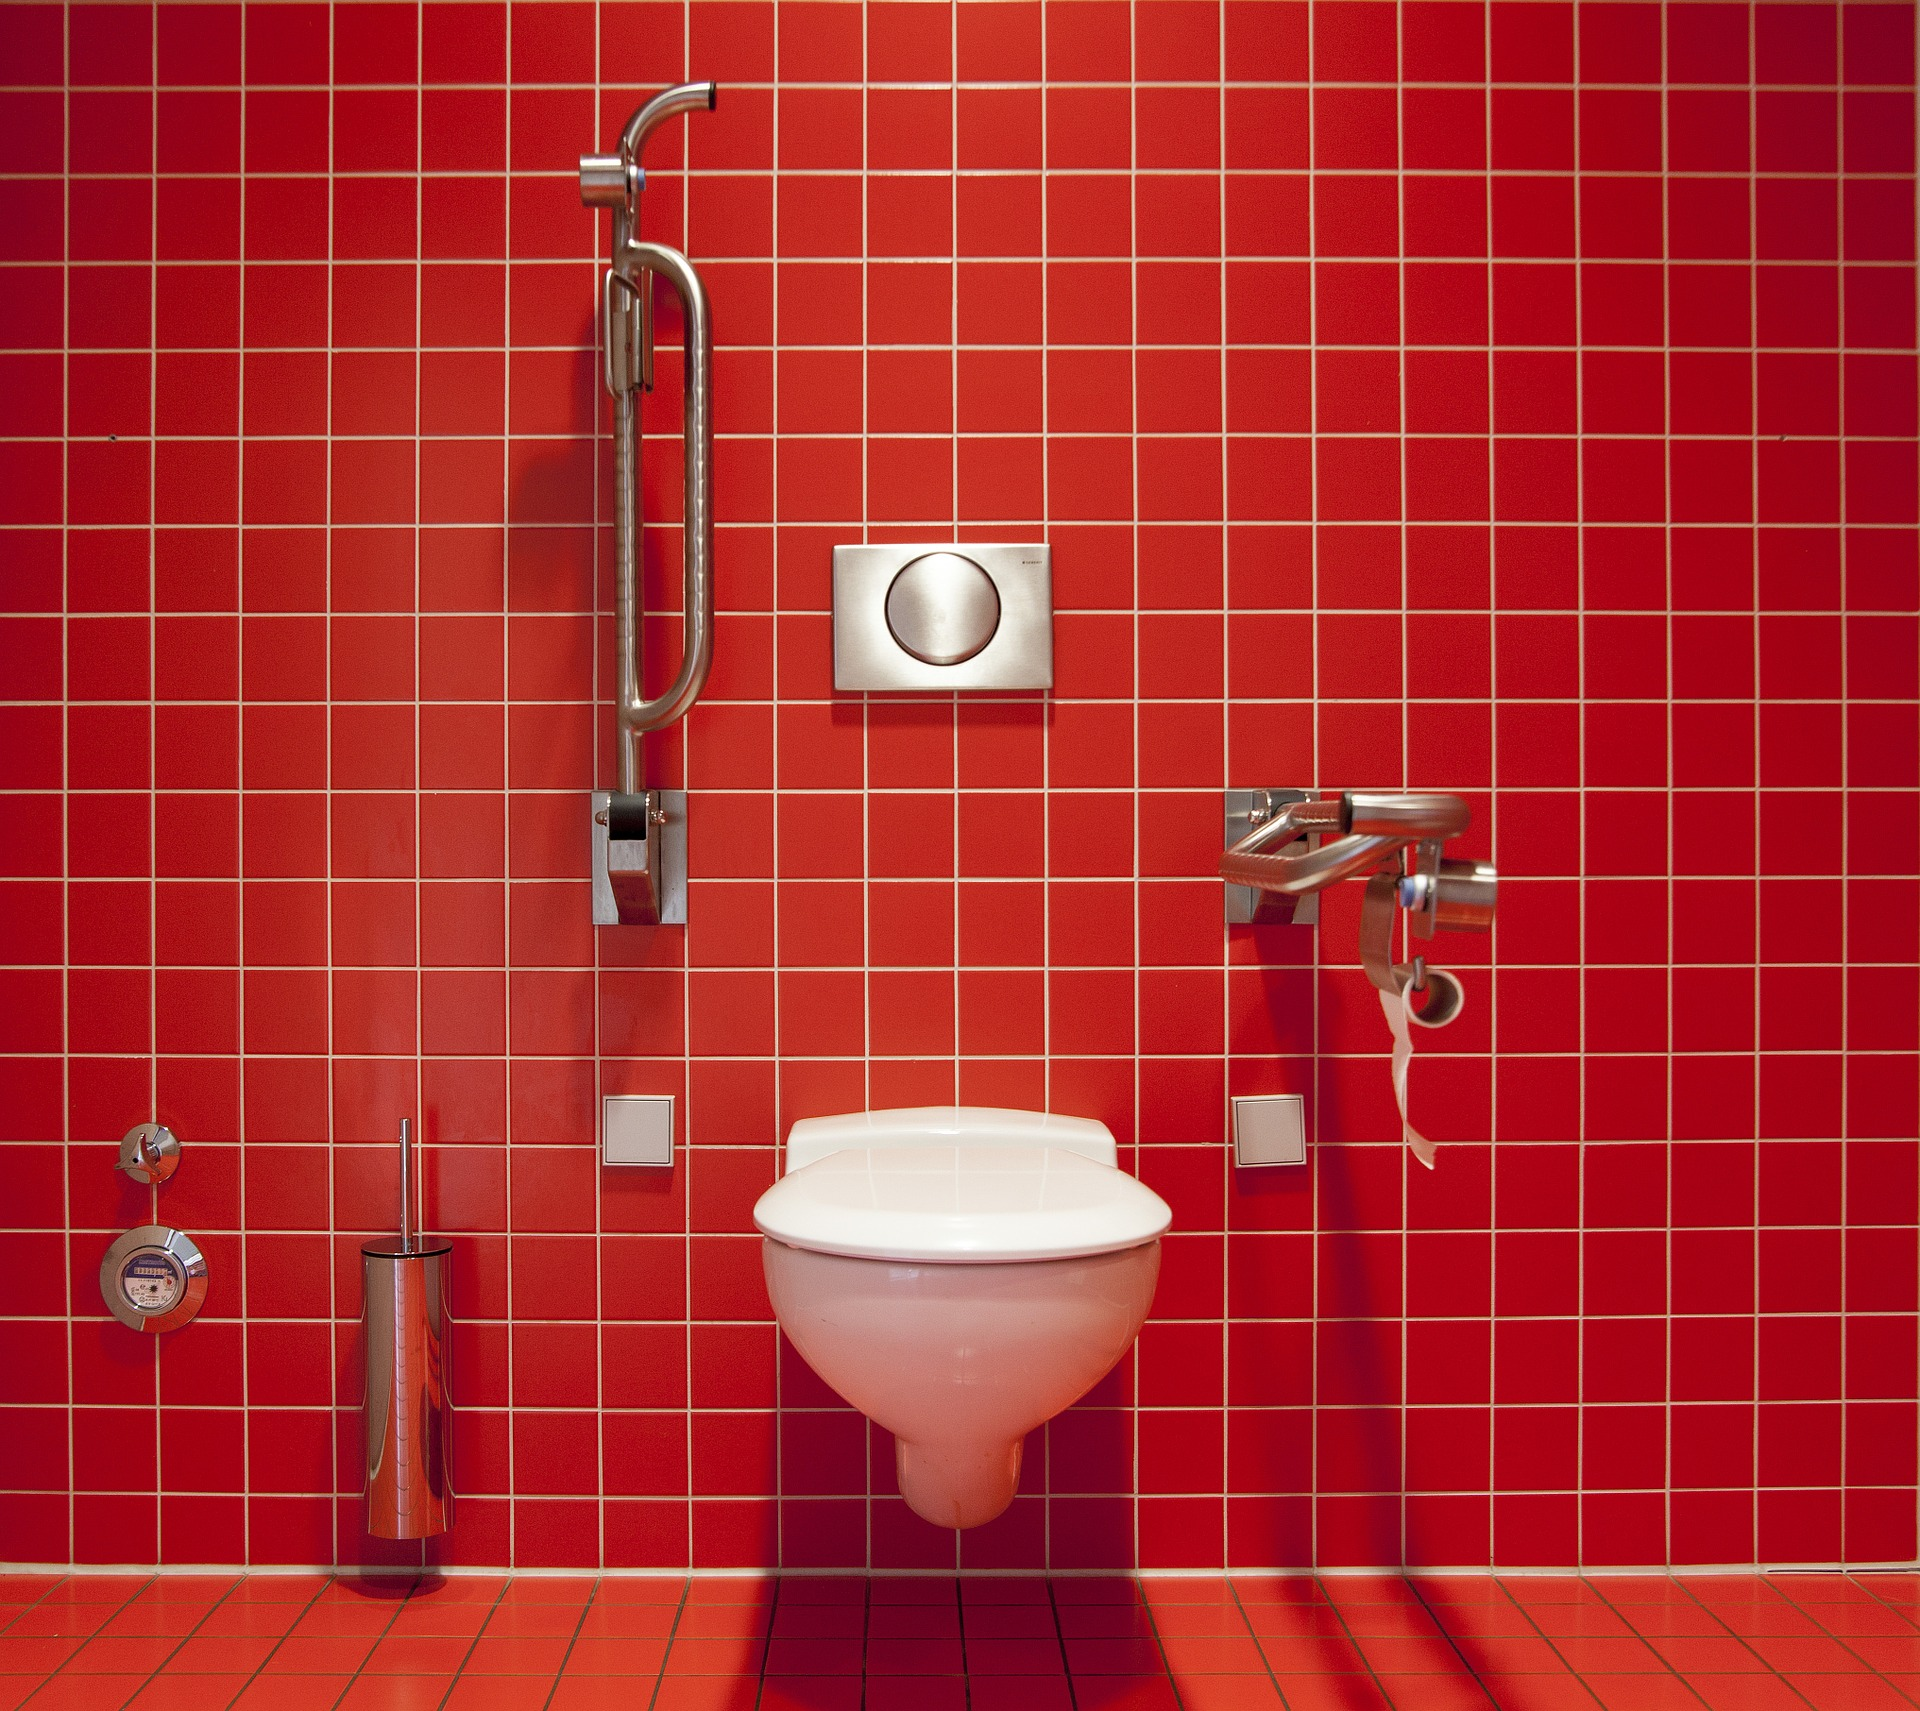 Red tile bathroom with toilet